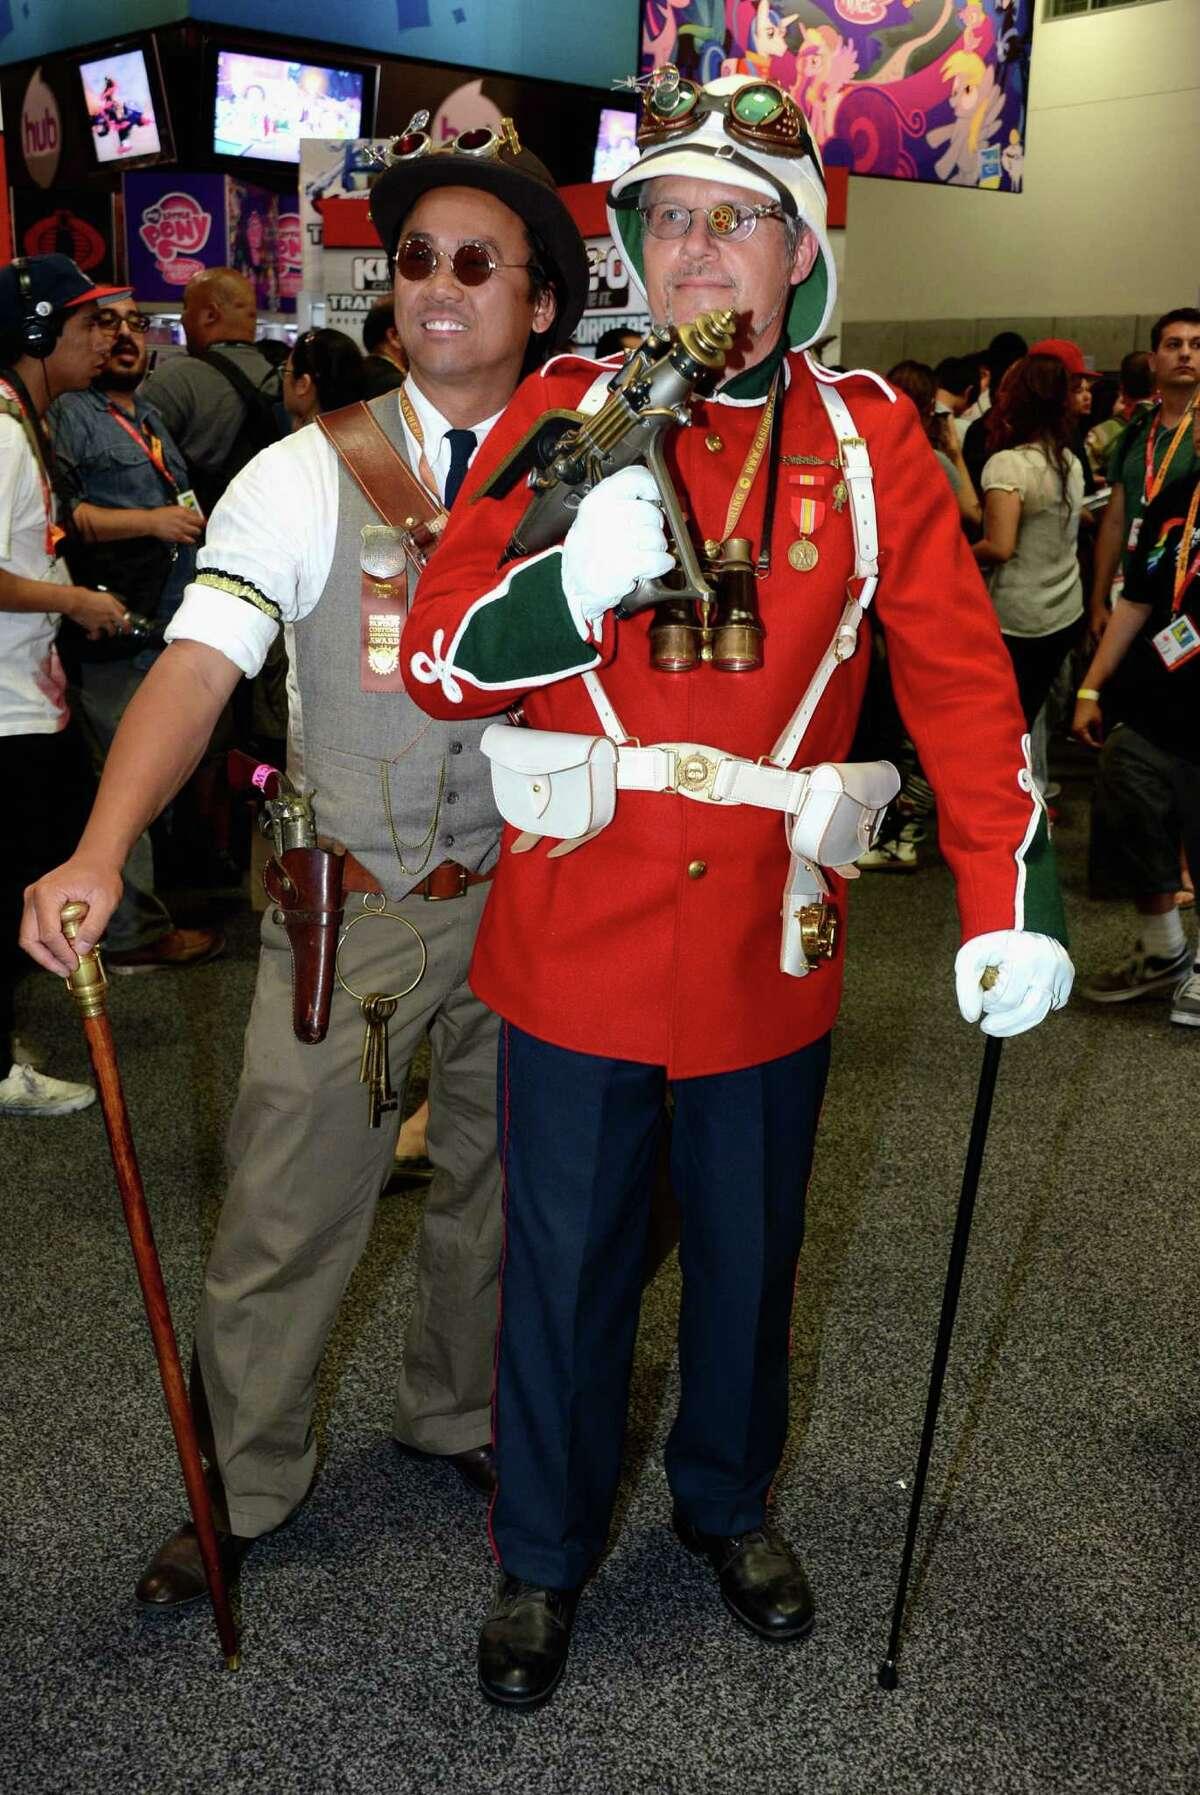 Guests attend Comic-Con International 2012 at San Diego Convention Center on Sunday. (Photo by Frazer Harrison/Getty Images)